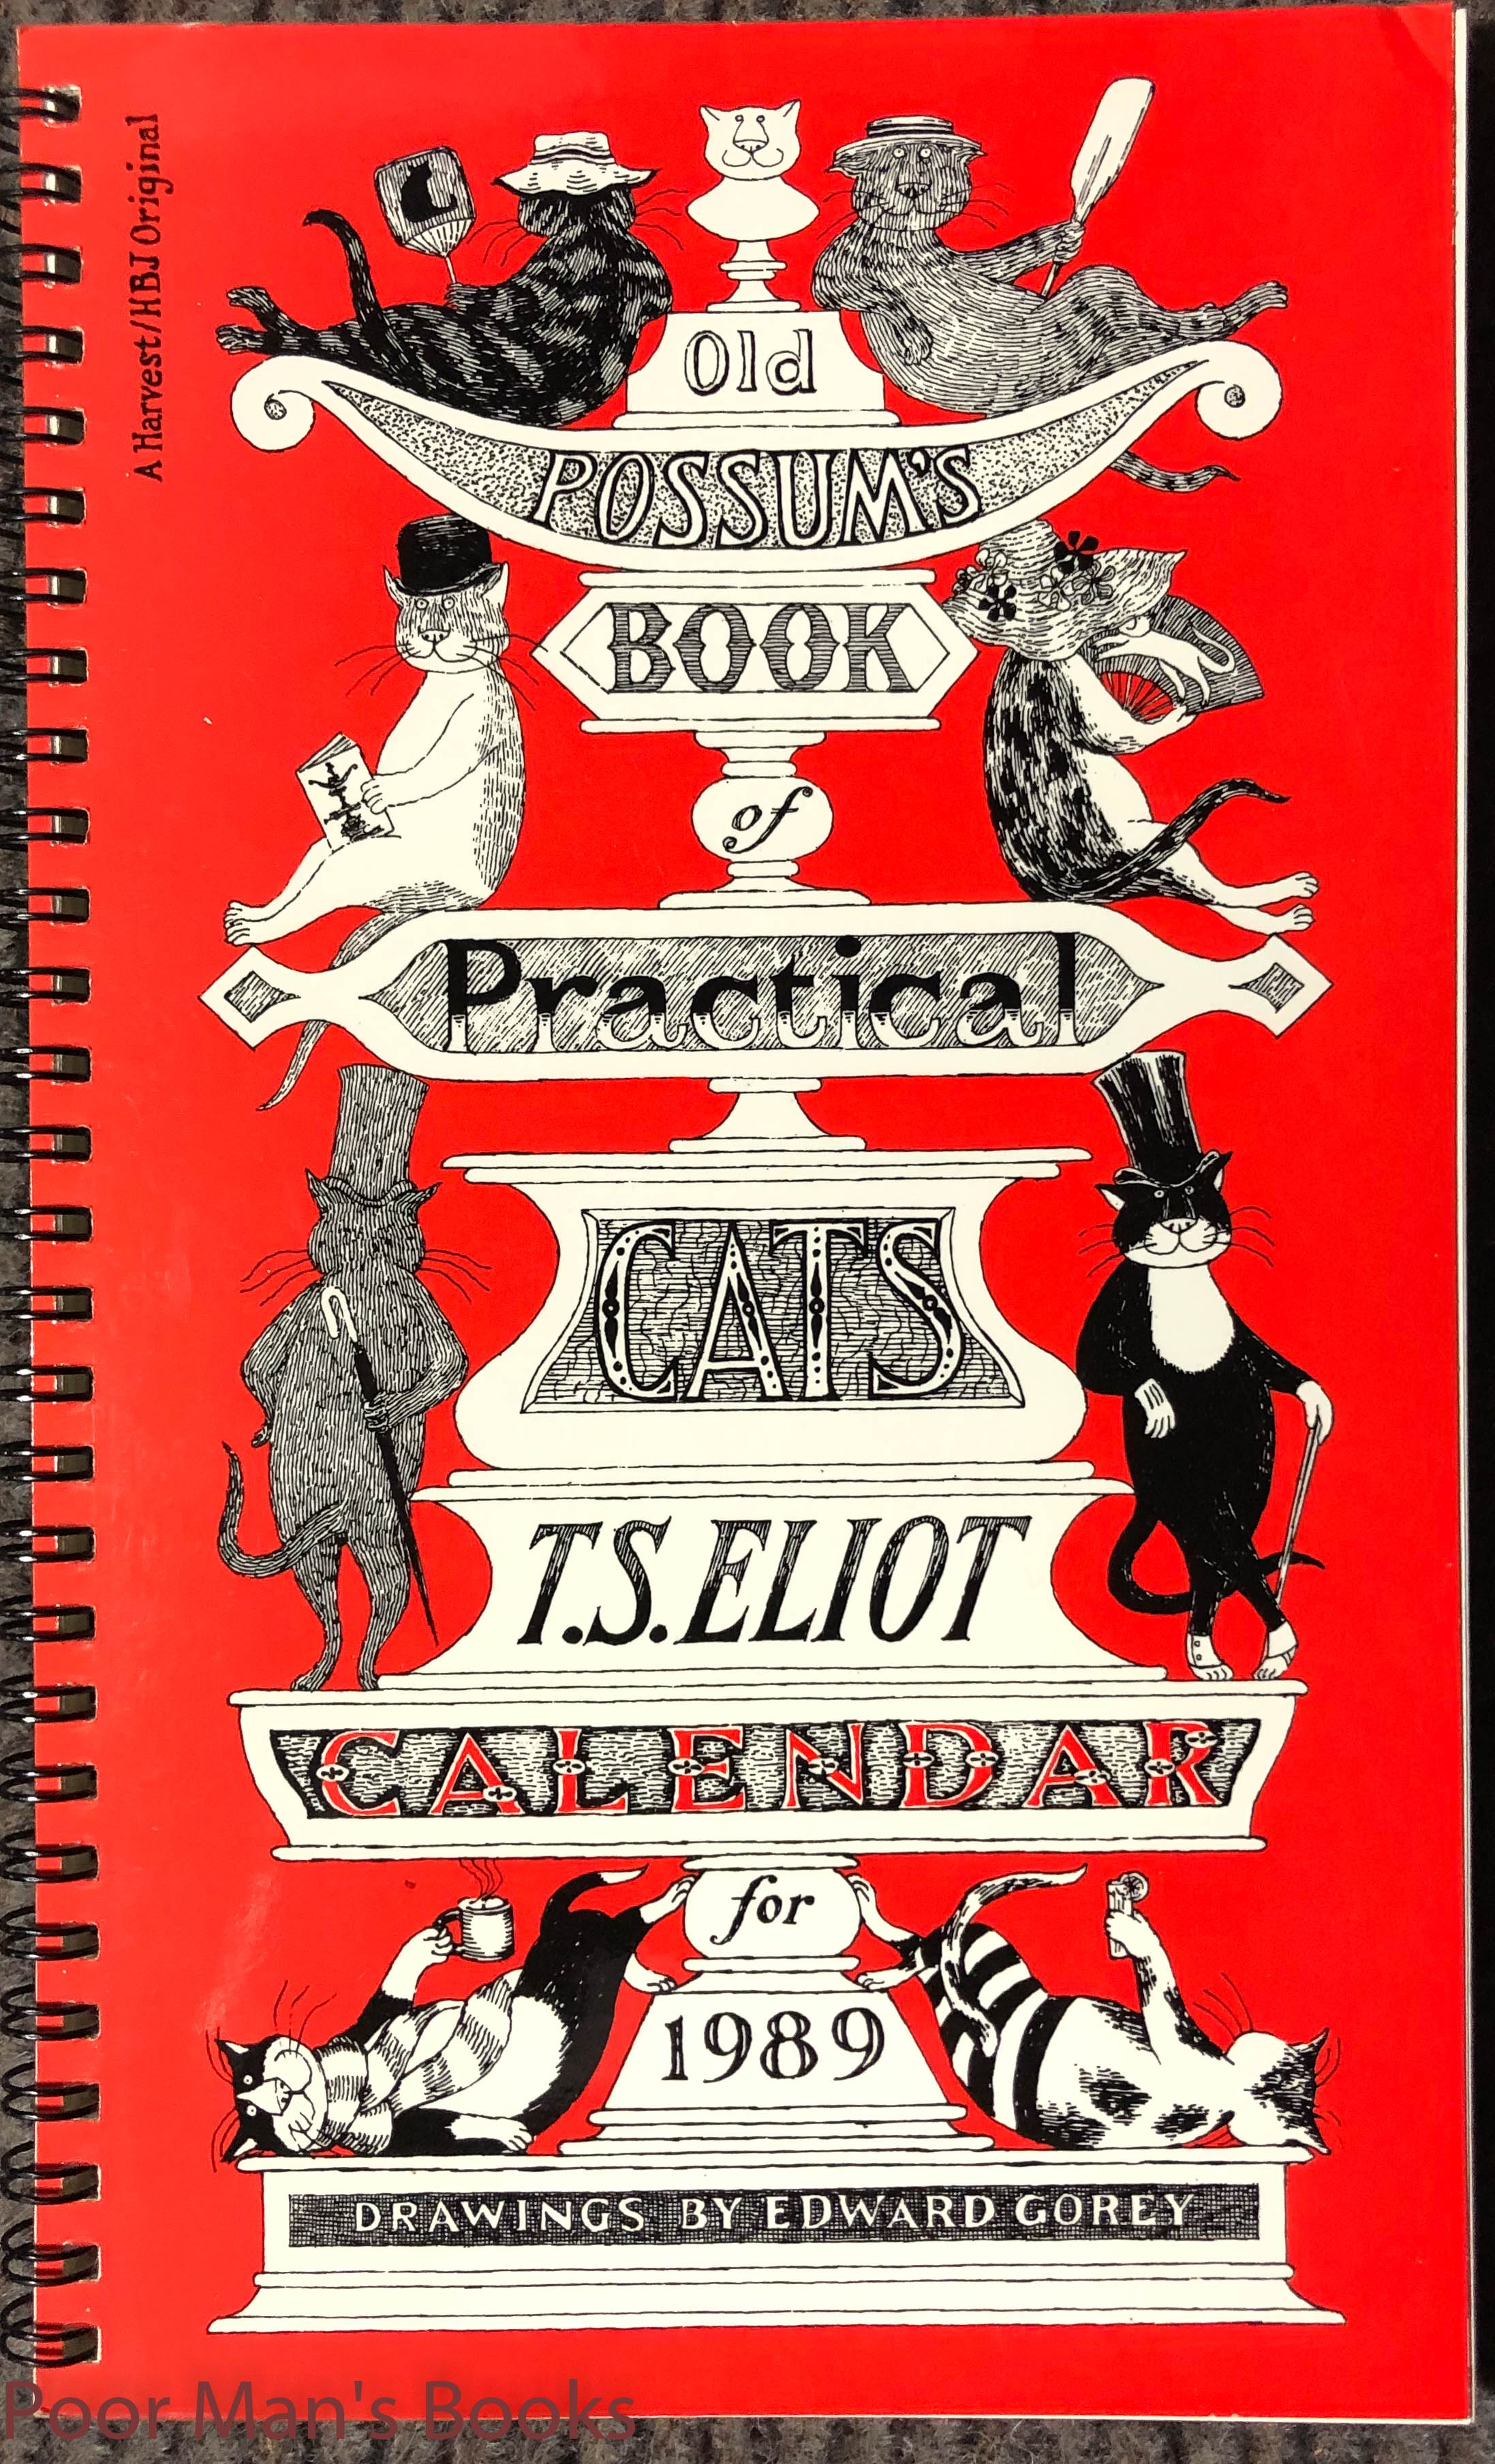 Image for [ Gorey, Edward] Eliot, T. S. Old Possum's Book Of Practical Cats. T. S. Eliot. Calendar For 1989 1st